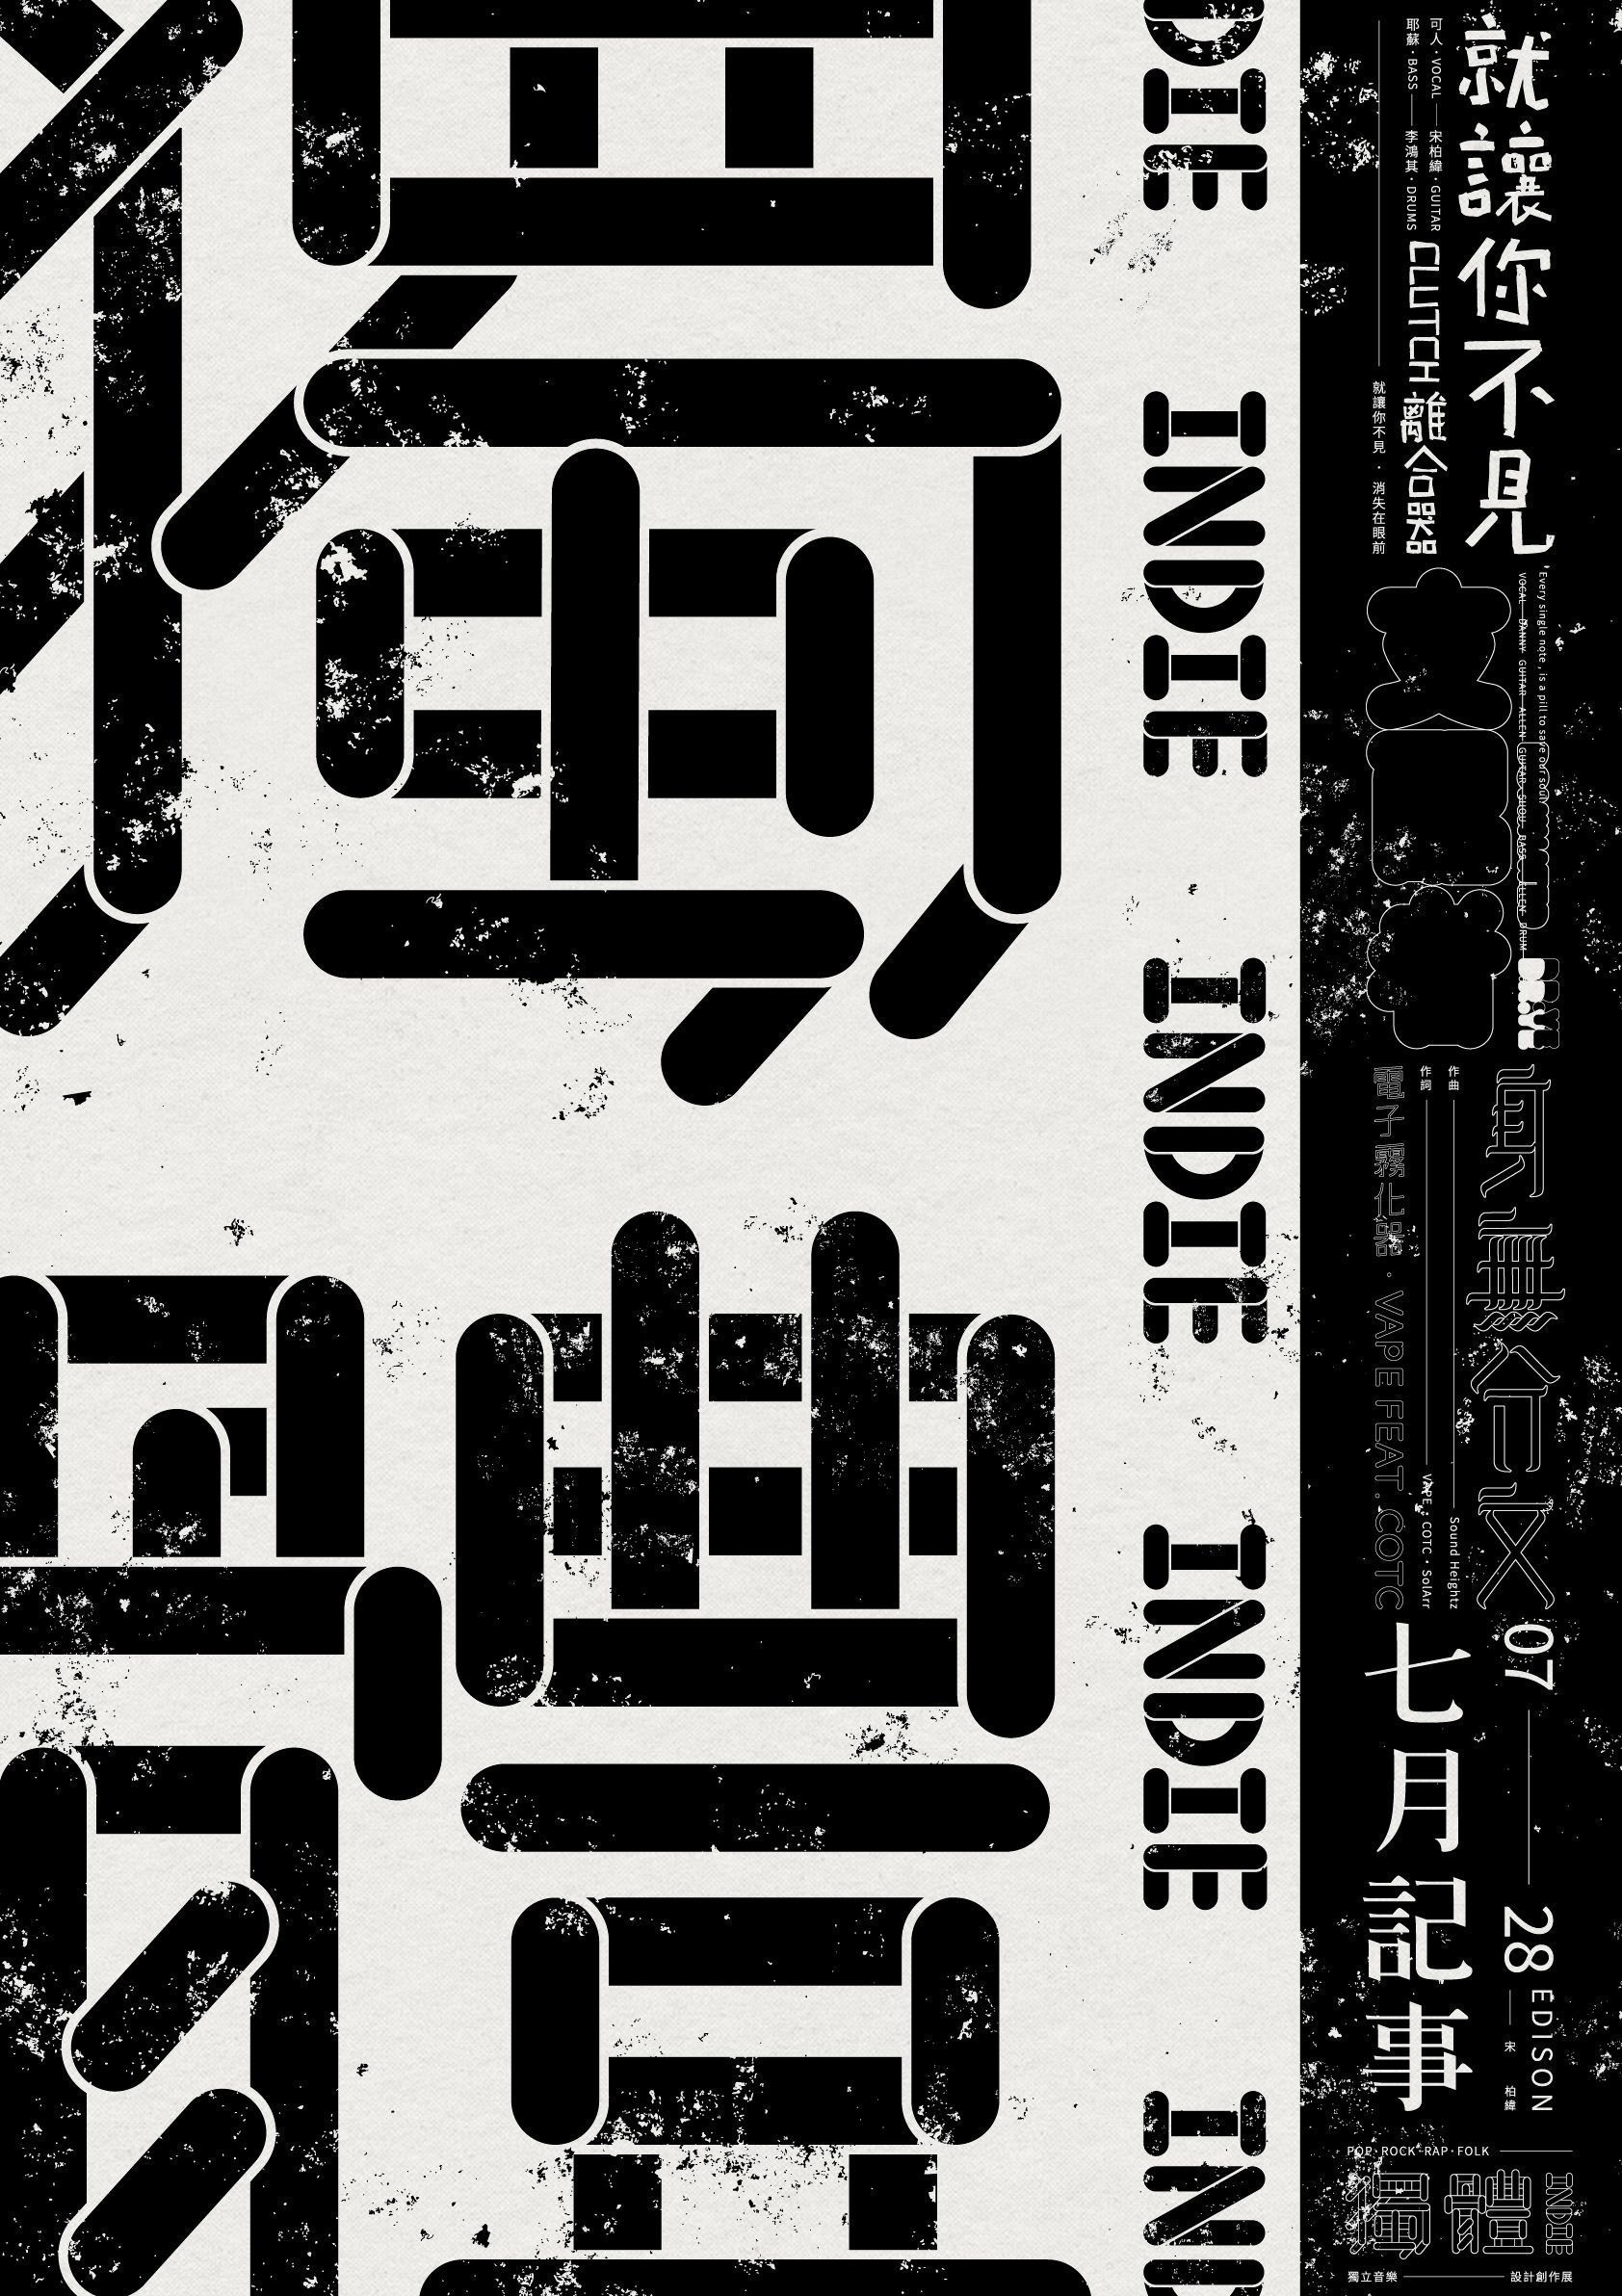 Experimental Chinese Typography - Taiwan Indie Music on Behance #chinesetypography Experimental Chinese Typography - Taiwan Indie Music on Behance #chinesetypography Experimental Chinese Typography - Taiwan Indie Music on Behance #chinesetypography Experimental Chinese Typography - Taiwan Indie Music on Behance #chinesetypography Experimental Chinese Typography - Taiwan Indie Music on Behance #chinesetypography Experimental Chinese Typography - Taiwan Indie Music on Behance #chinesetypography Ex #chinesetypography